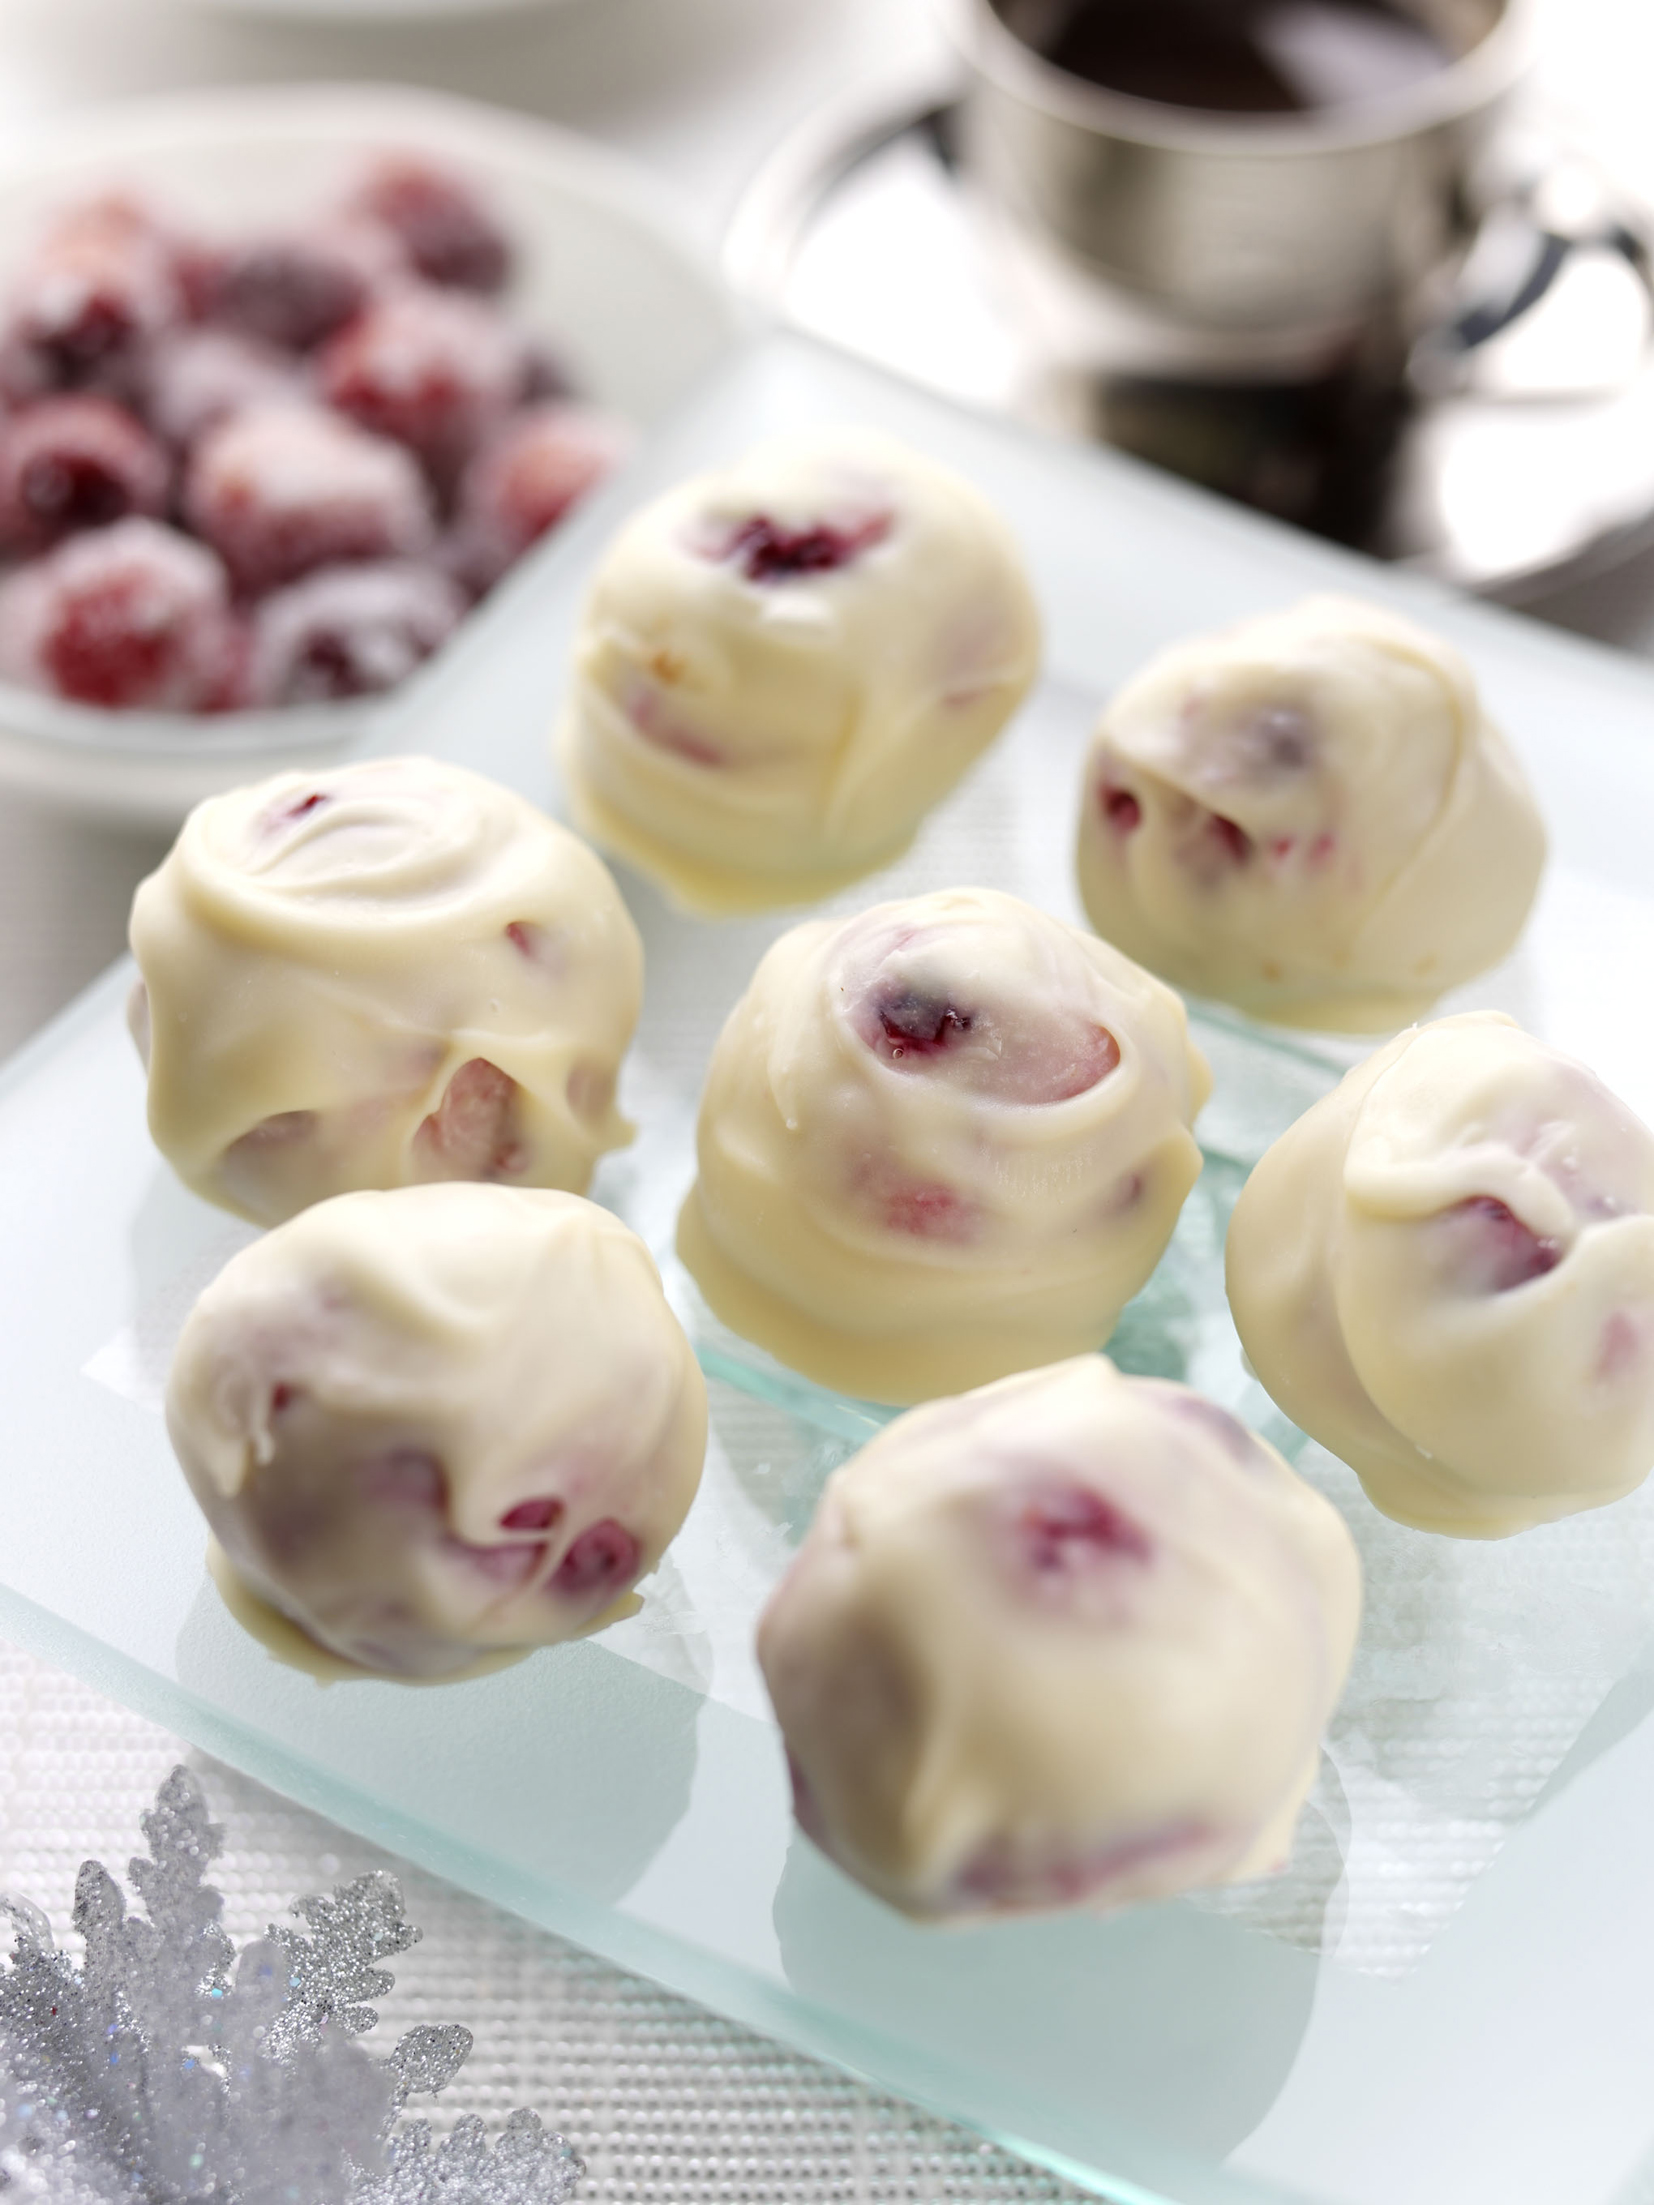 White Chocolate and BerryWorld Cranberry Truffles